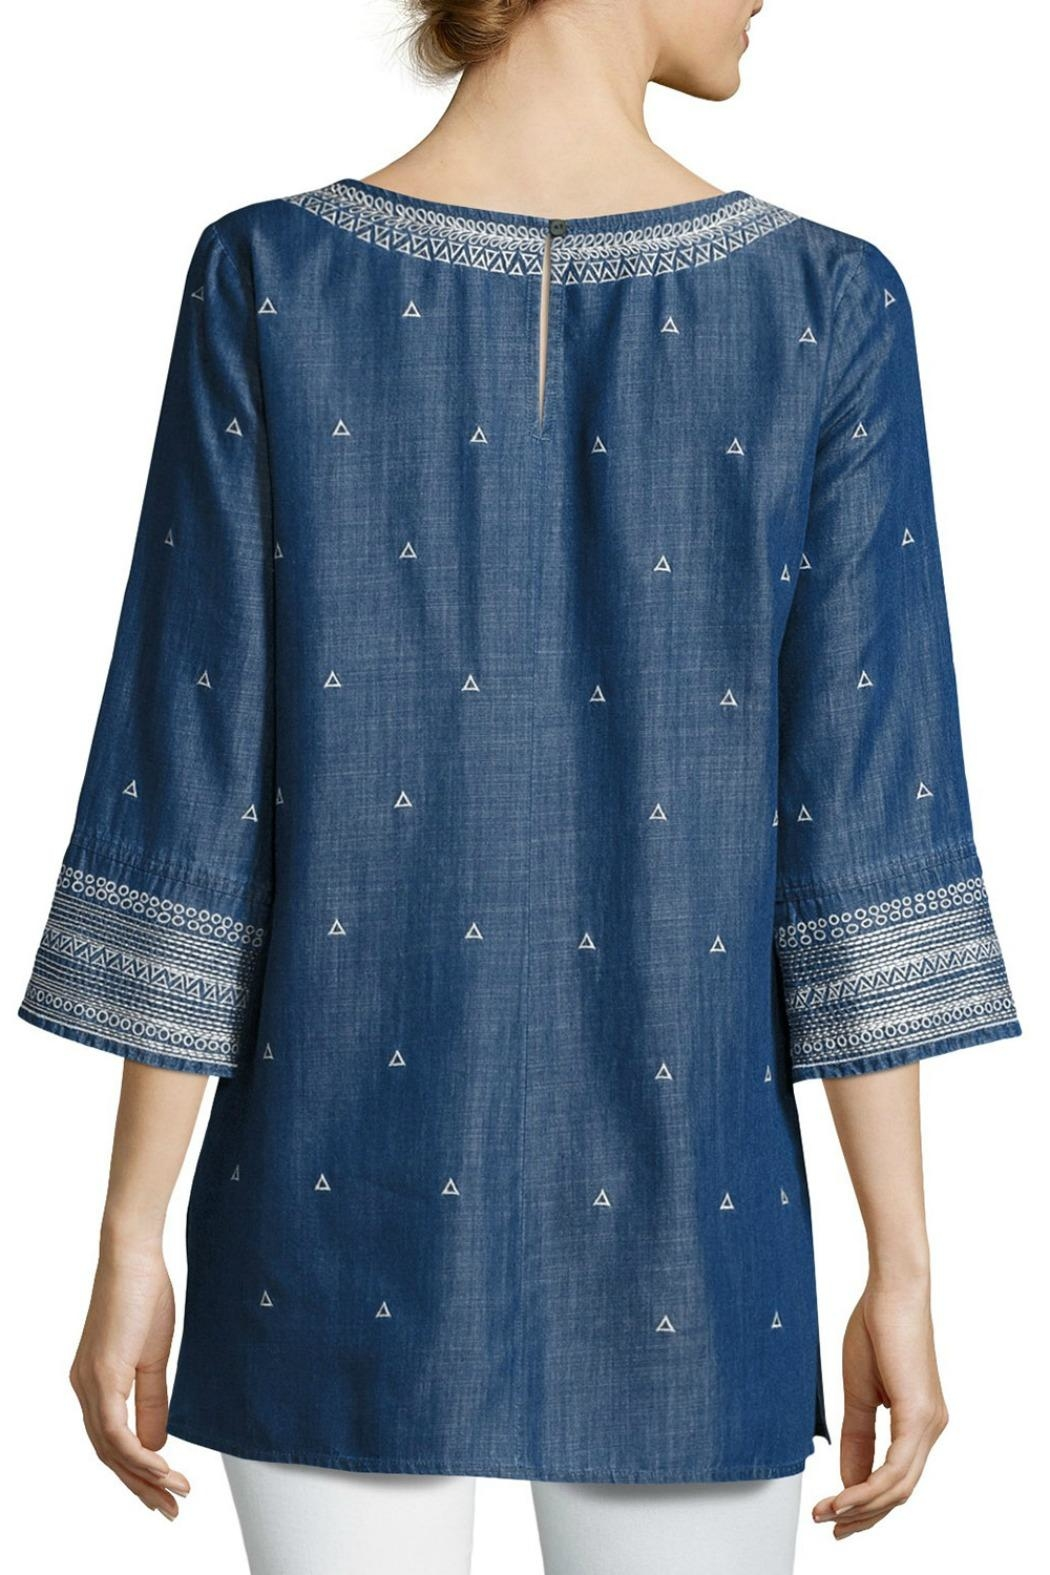 Nic + Zoe Embroidered Denim Tunic Top - Front Full Image